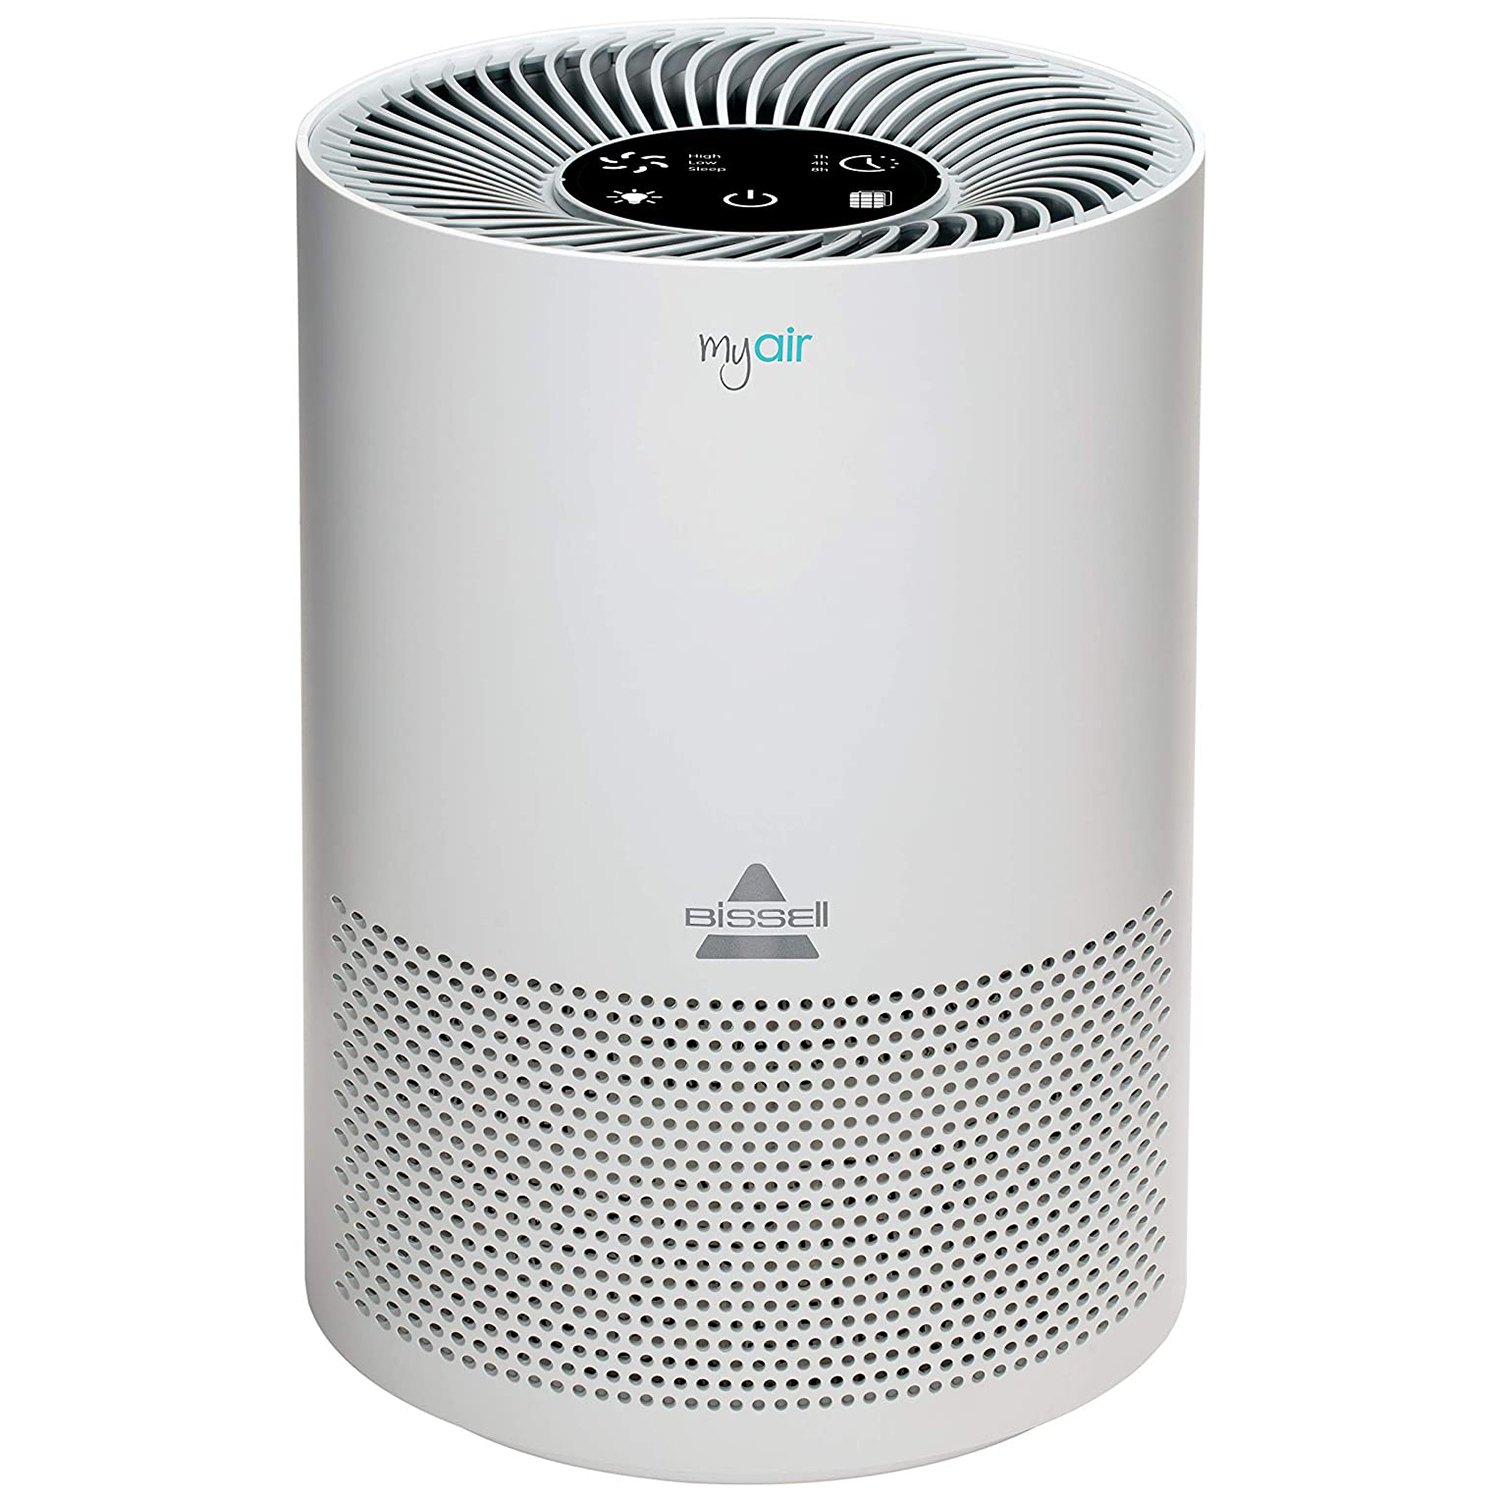 Best Air Purifier for Baby Congestion: Bissell MYair 2780A Air Purifier